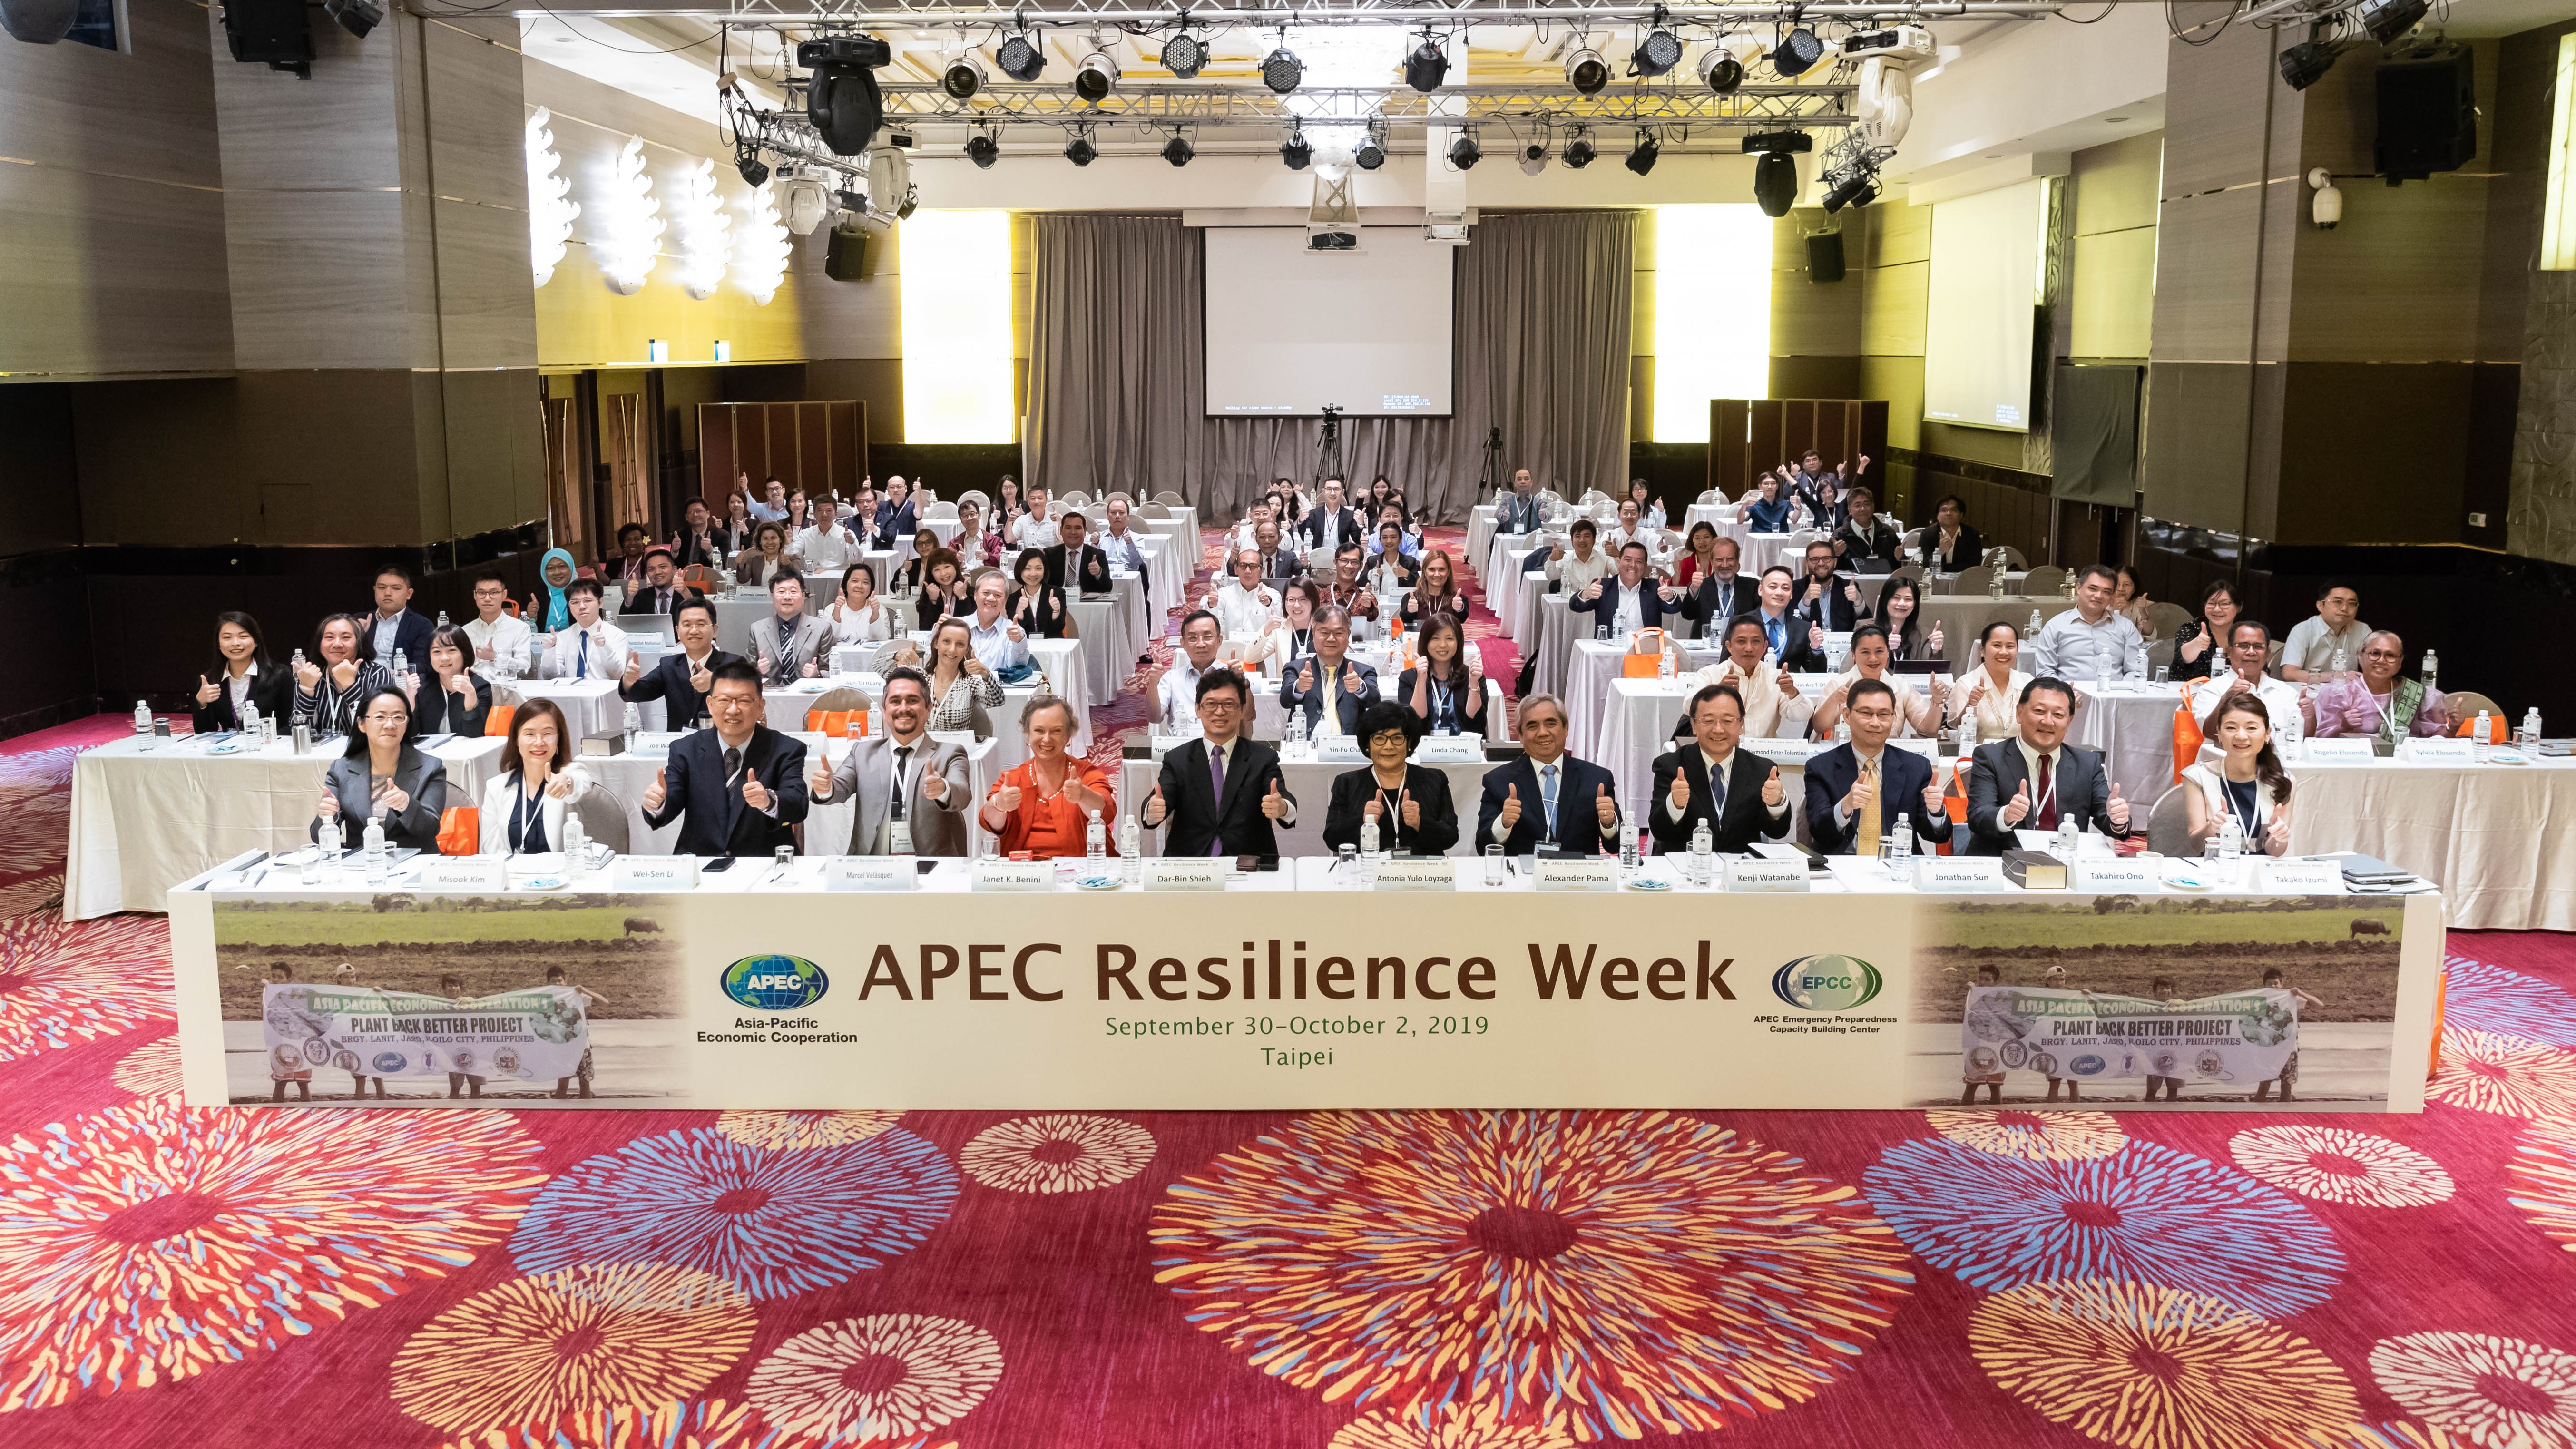 NCDR hosted the APEC Resilience Week in Taipei during September 30 – October 2. 's picture